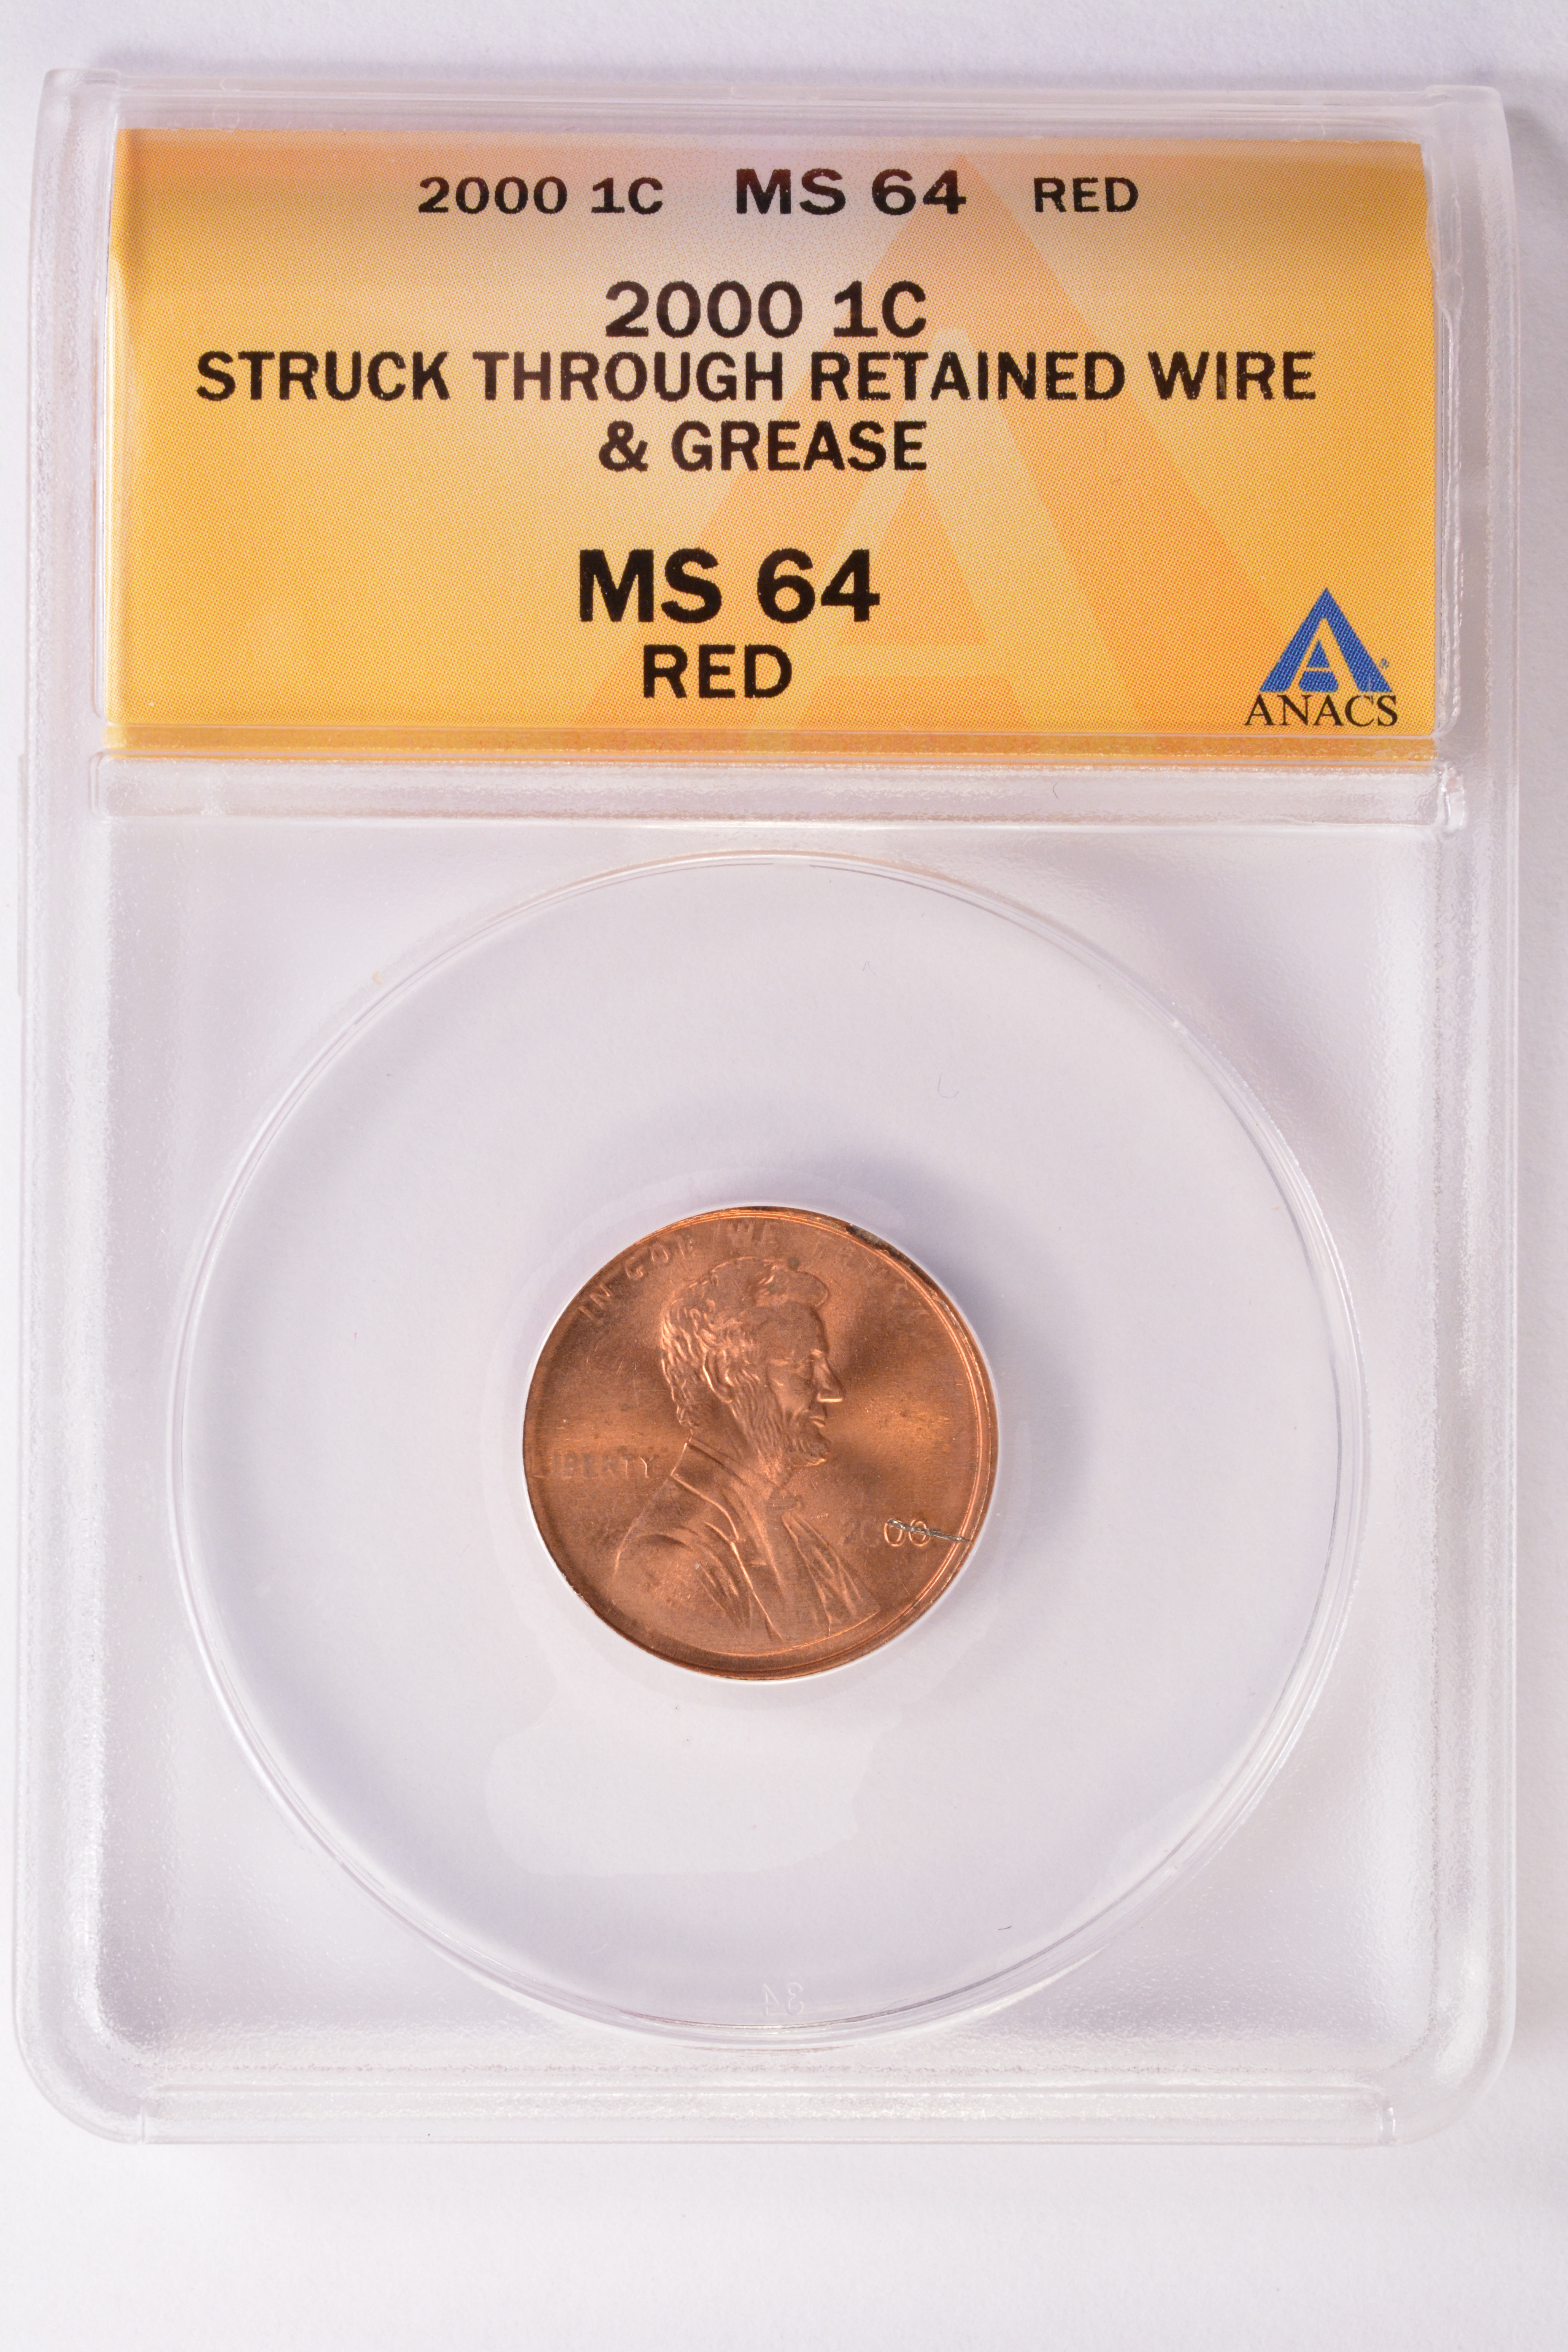 ANACS 1c 2000 Struck Through & Retained Wire at Date MS-64